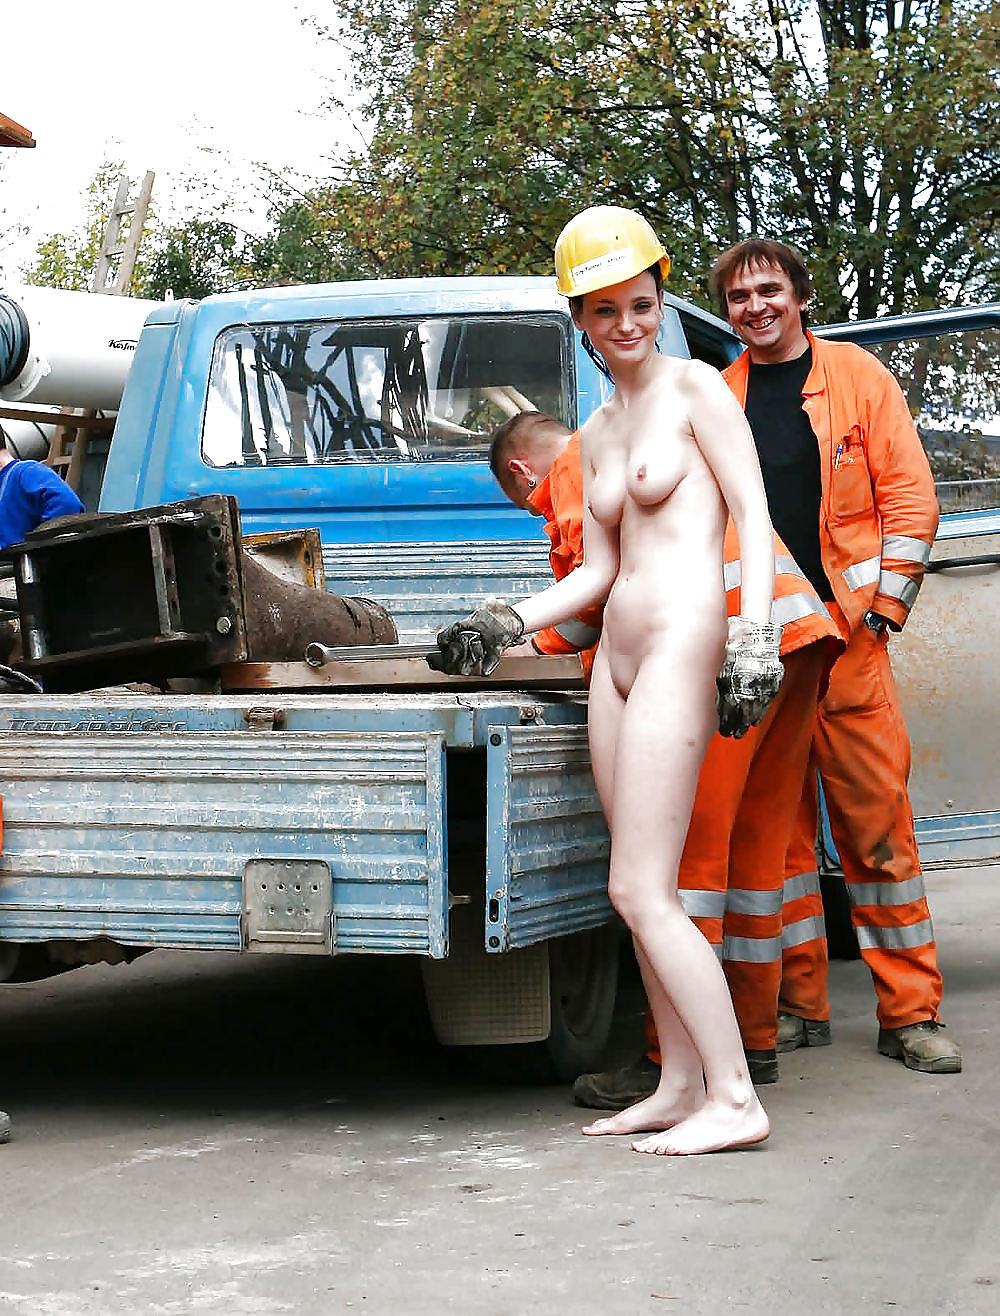 dirty-naked-construction-workers